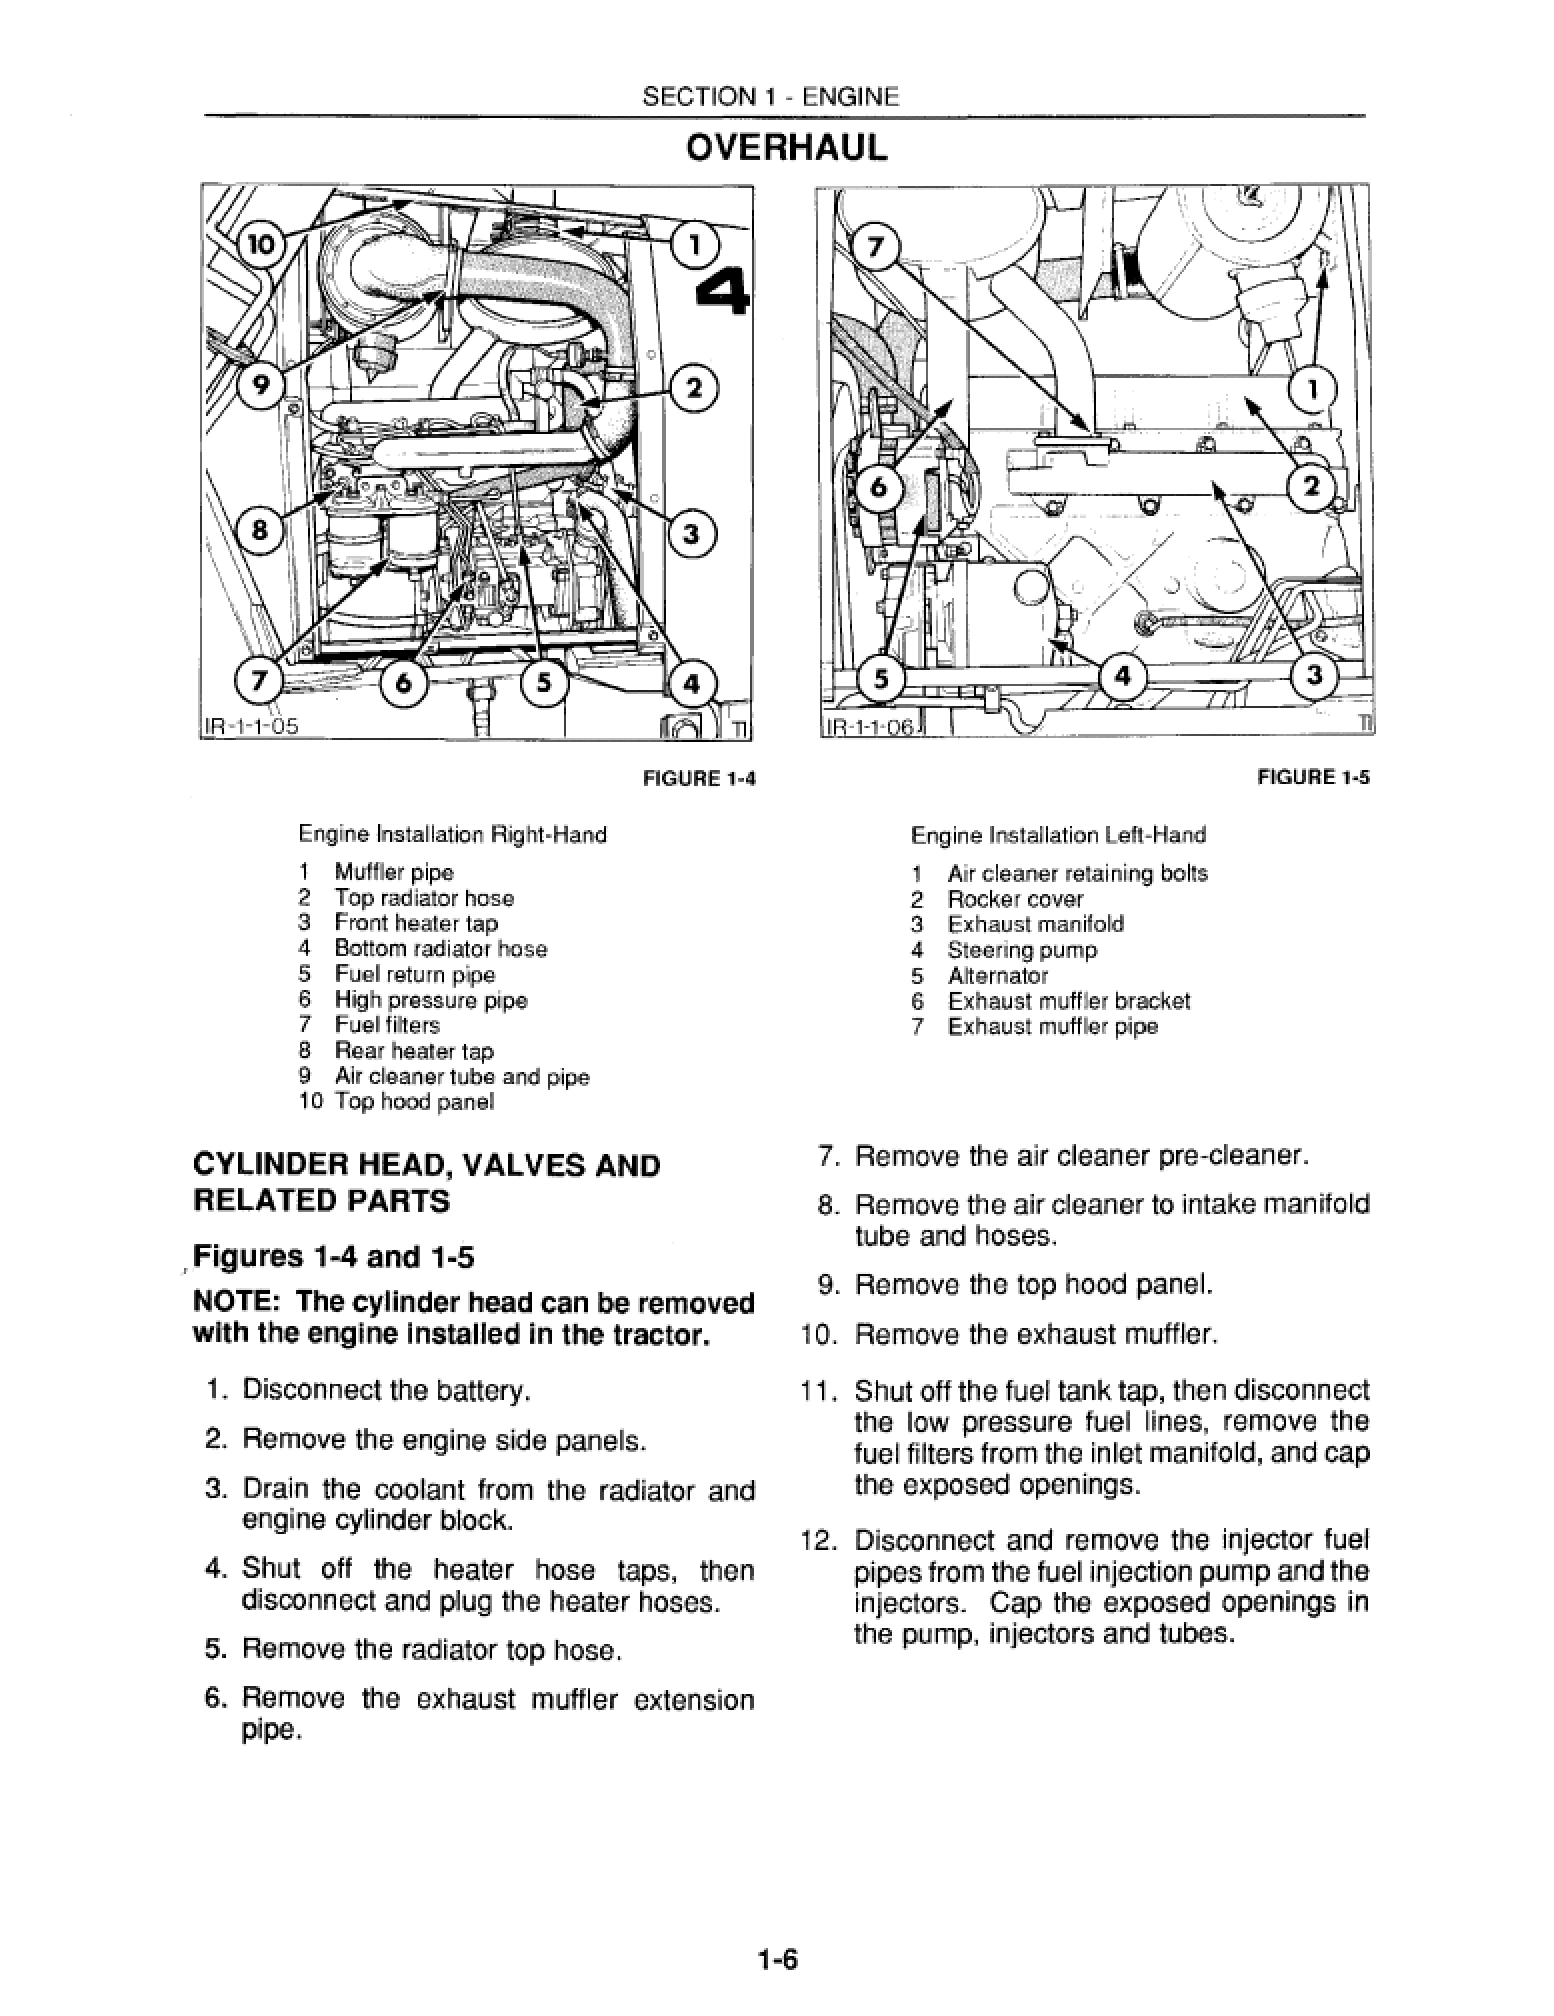 Ford 555D Alternator Wiring Diagram from static-resources.imageservice.cloud